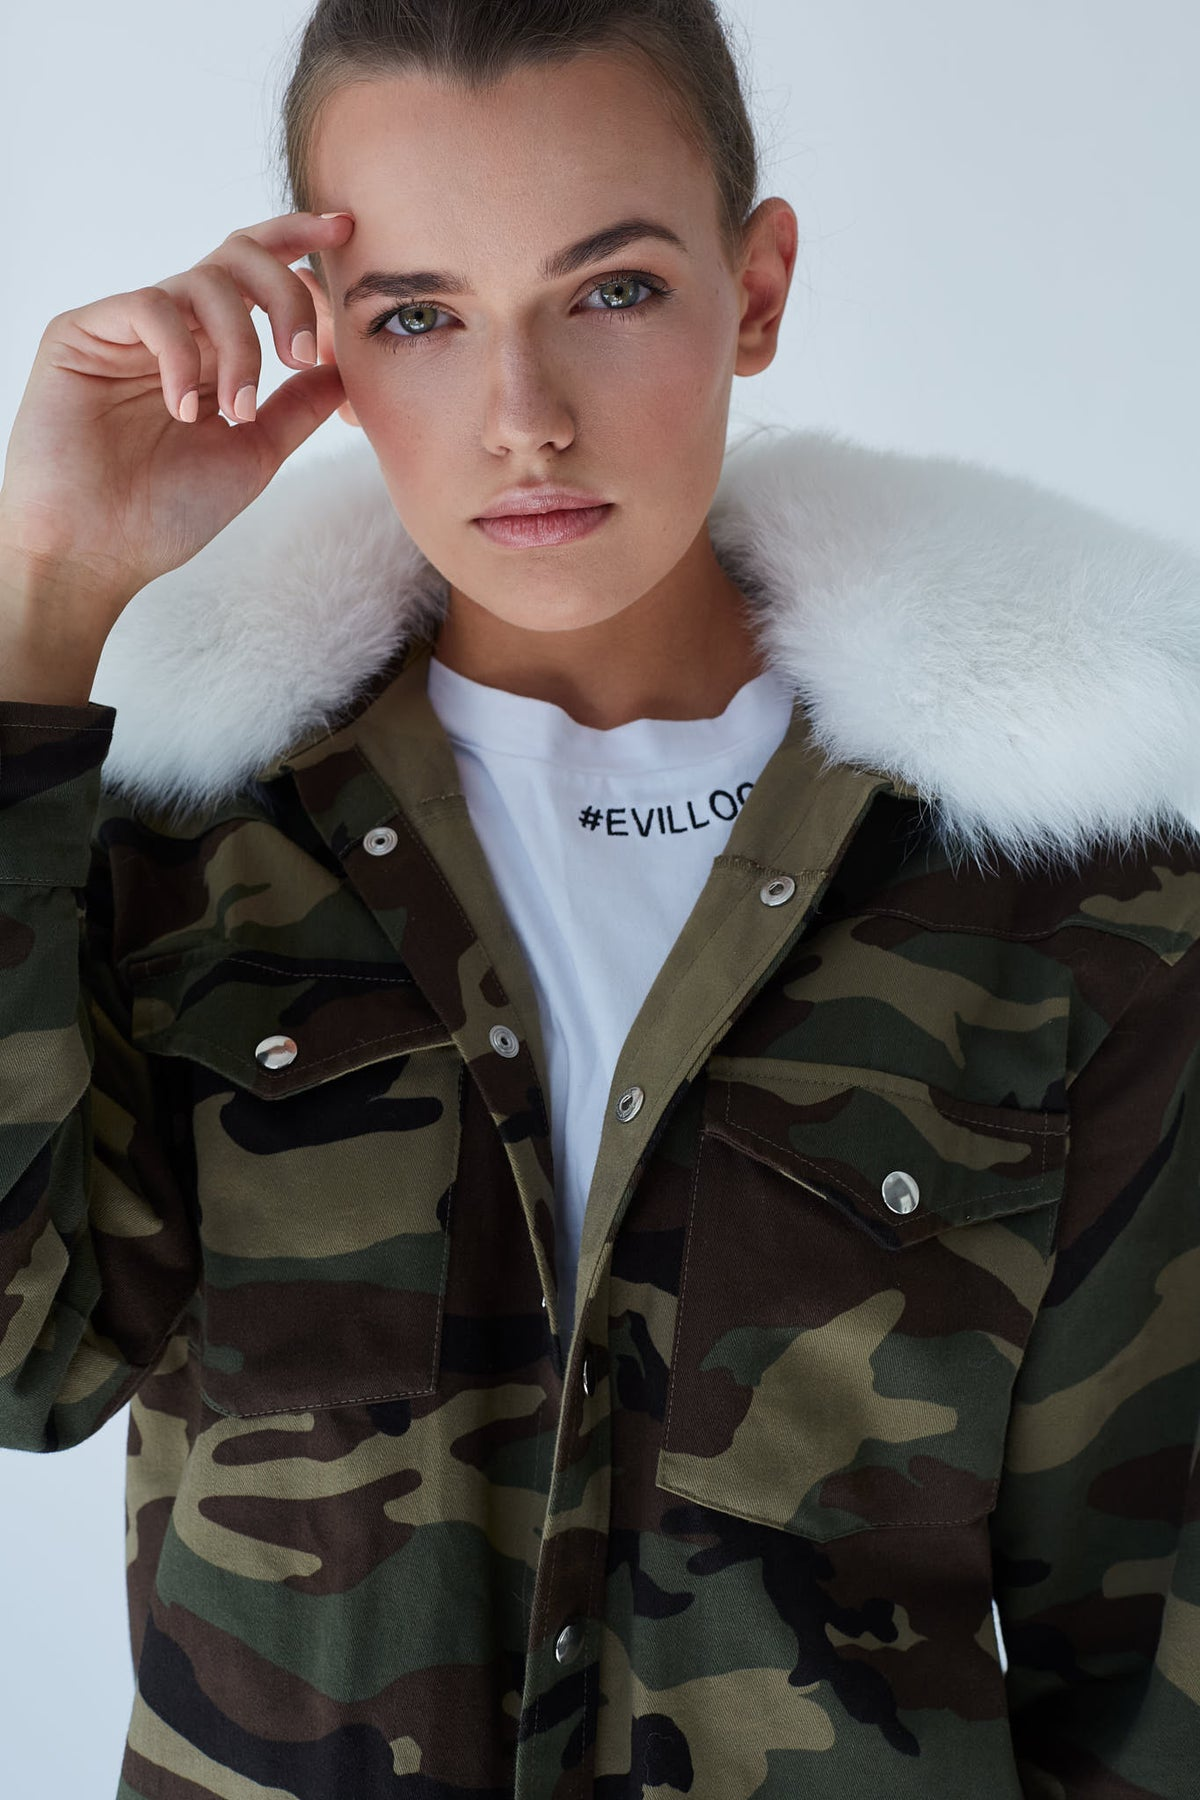 Camo-Series-Oversize-Camouflage-Print-Jacket-with-white-Fox-Fur-le-slap-details.jpg